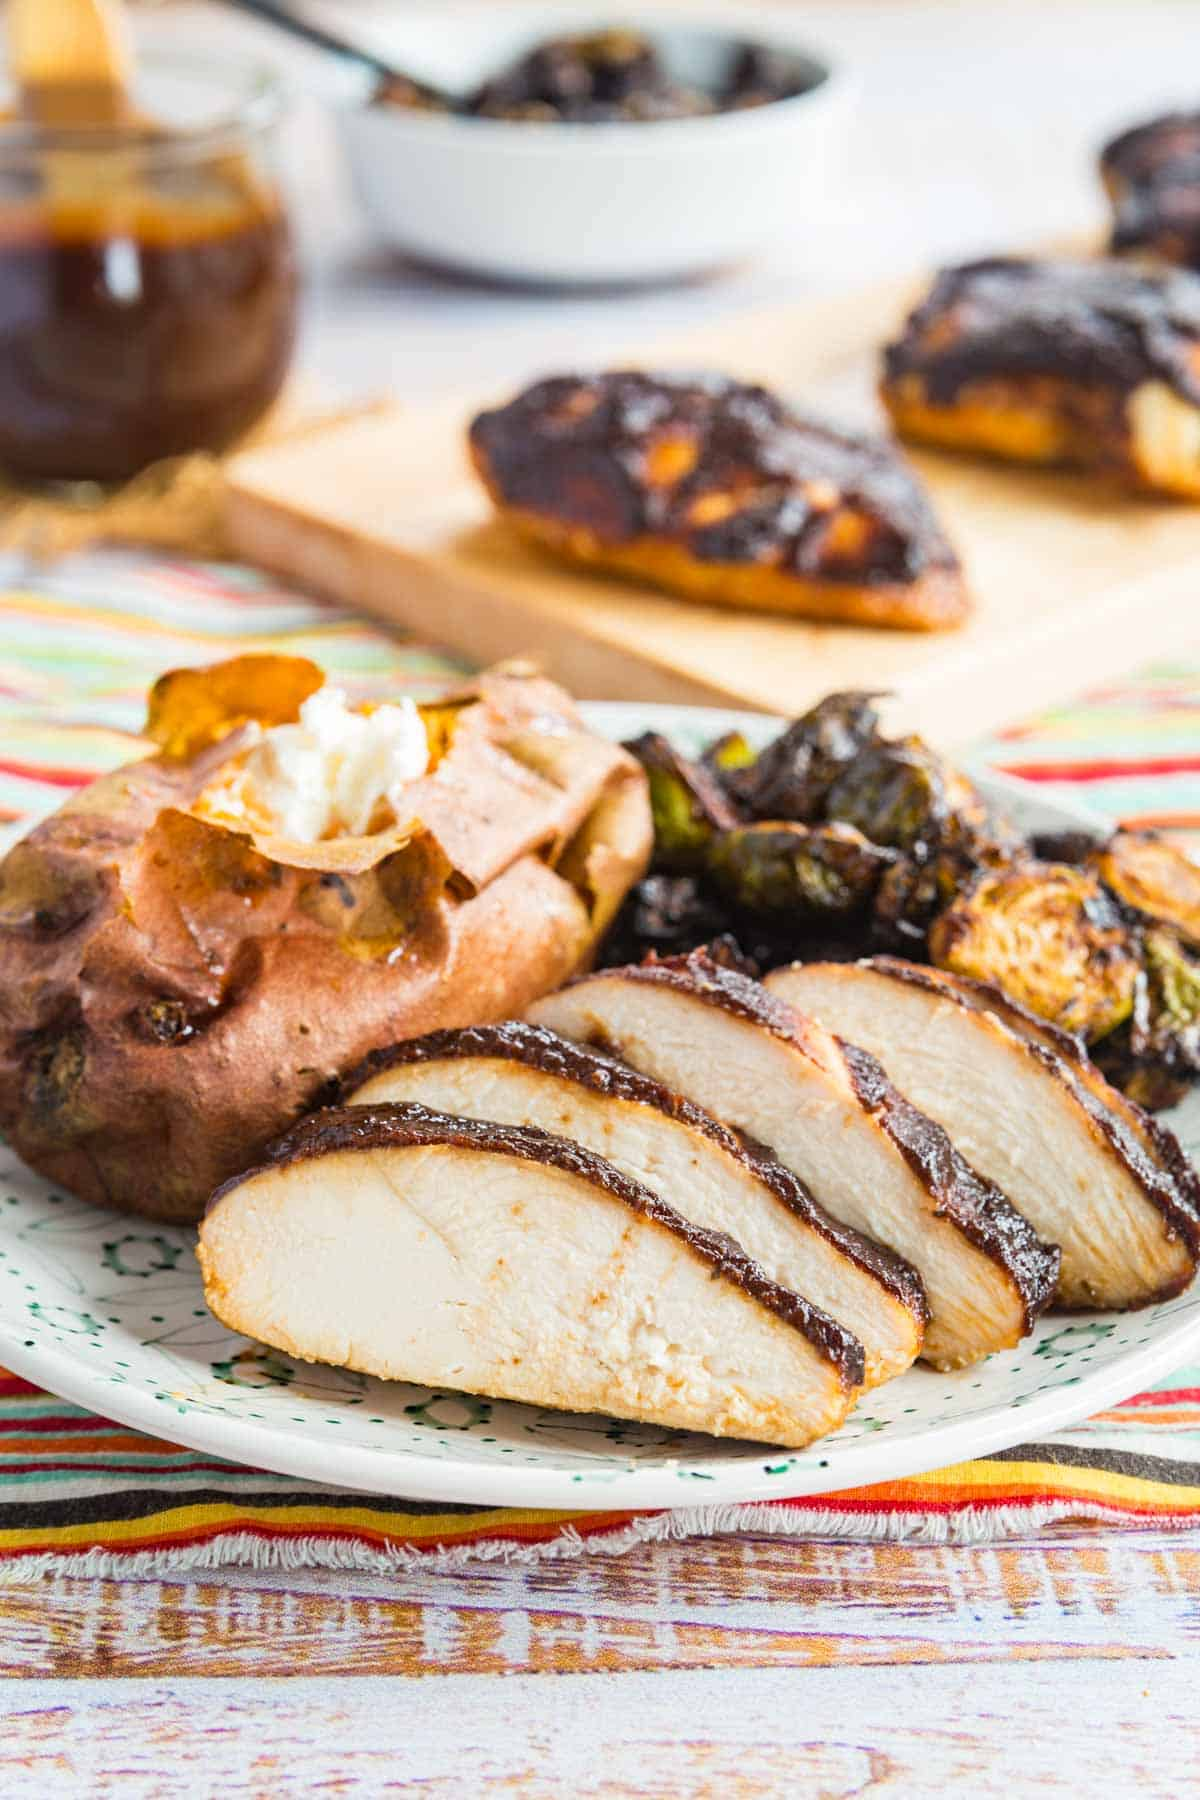 sliced of juicy chicken on a plate serve with a baked sweet potato and brussels sprouts